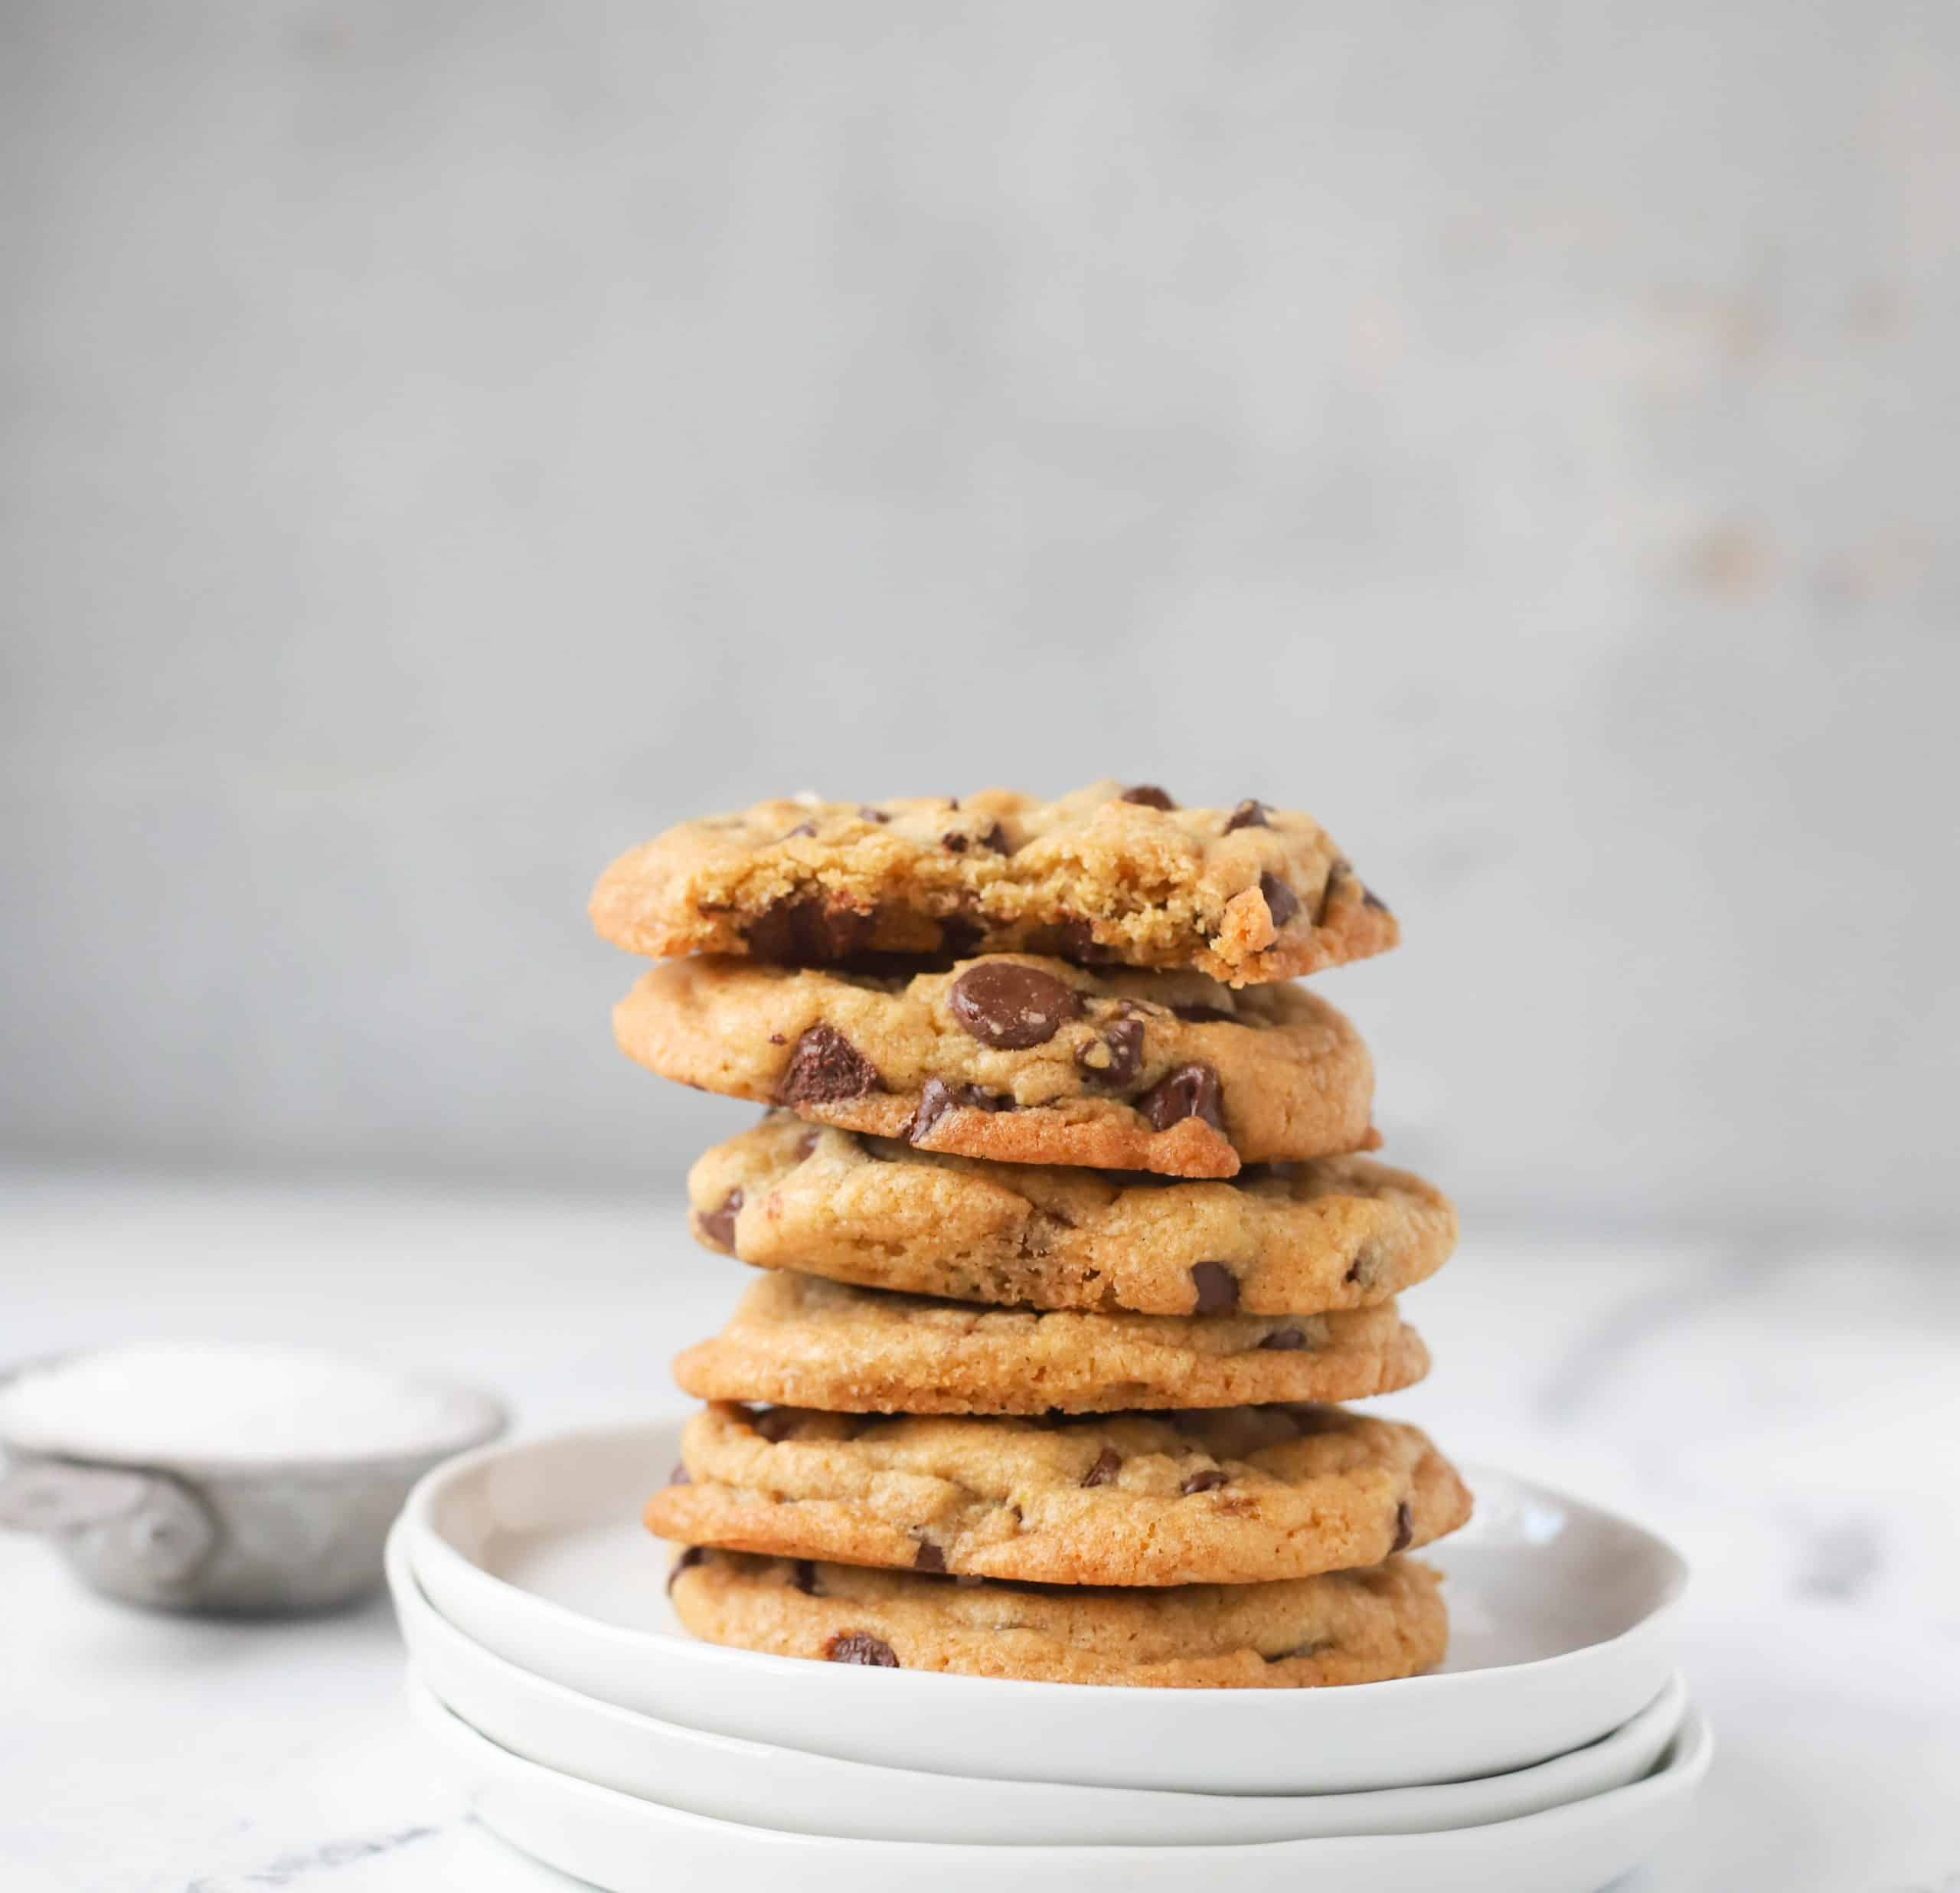 stack of browned butter chocolate chip cookies on a plate